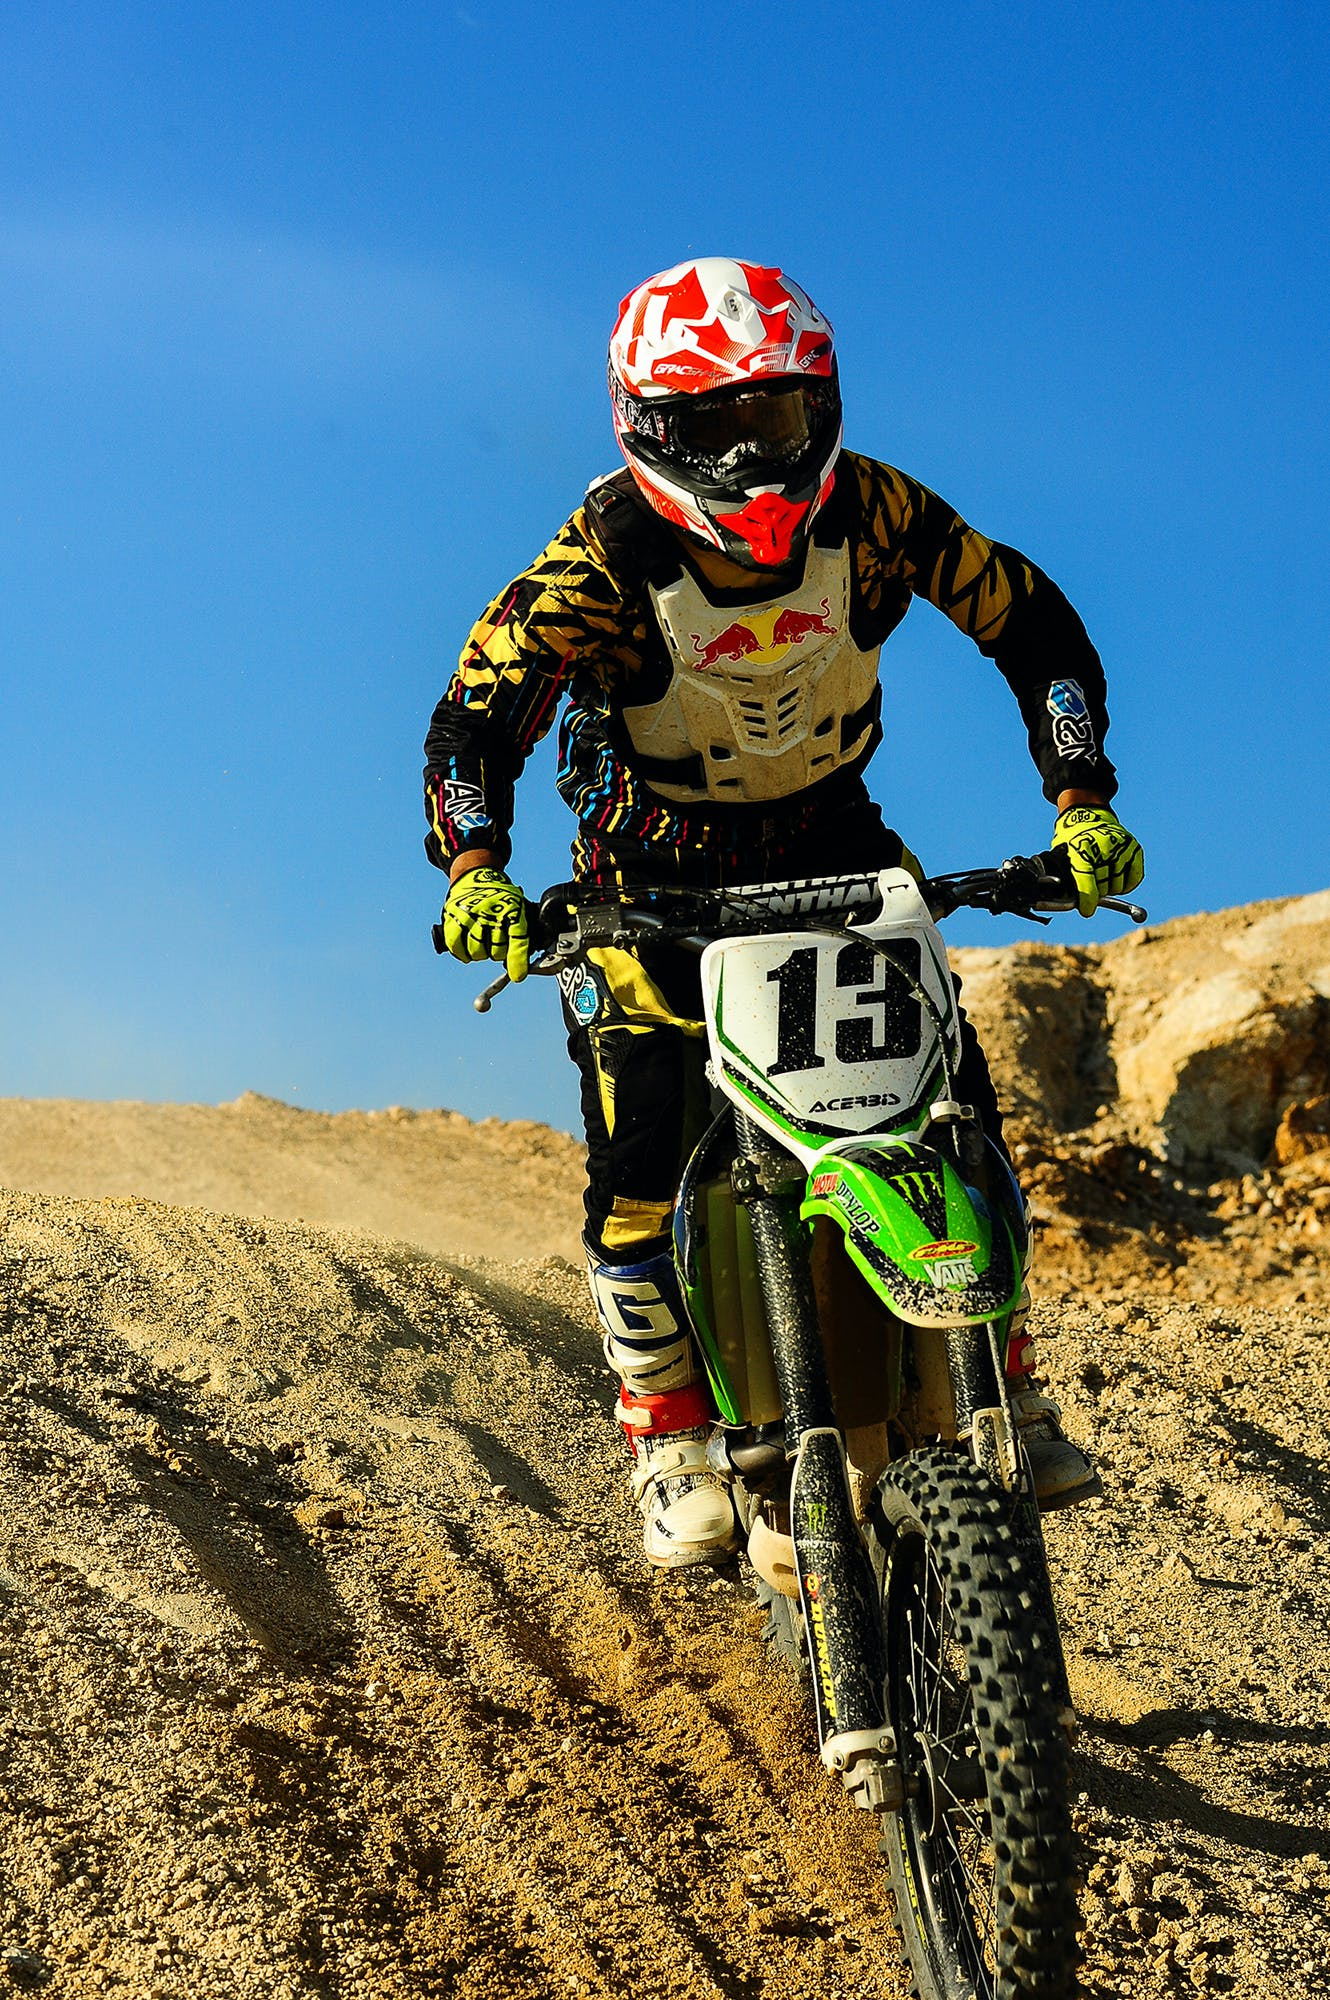 Man Riding Motocross Dirt Bike on Hill